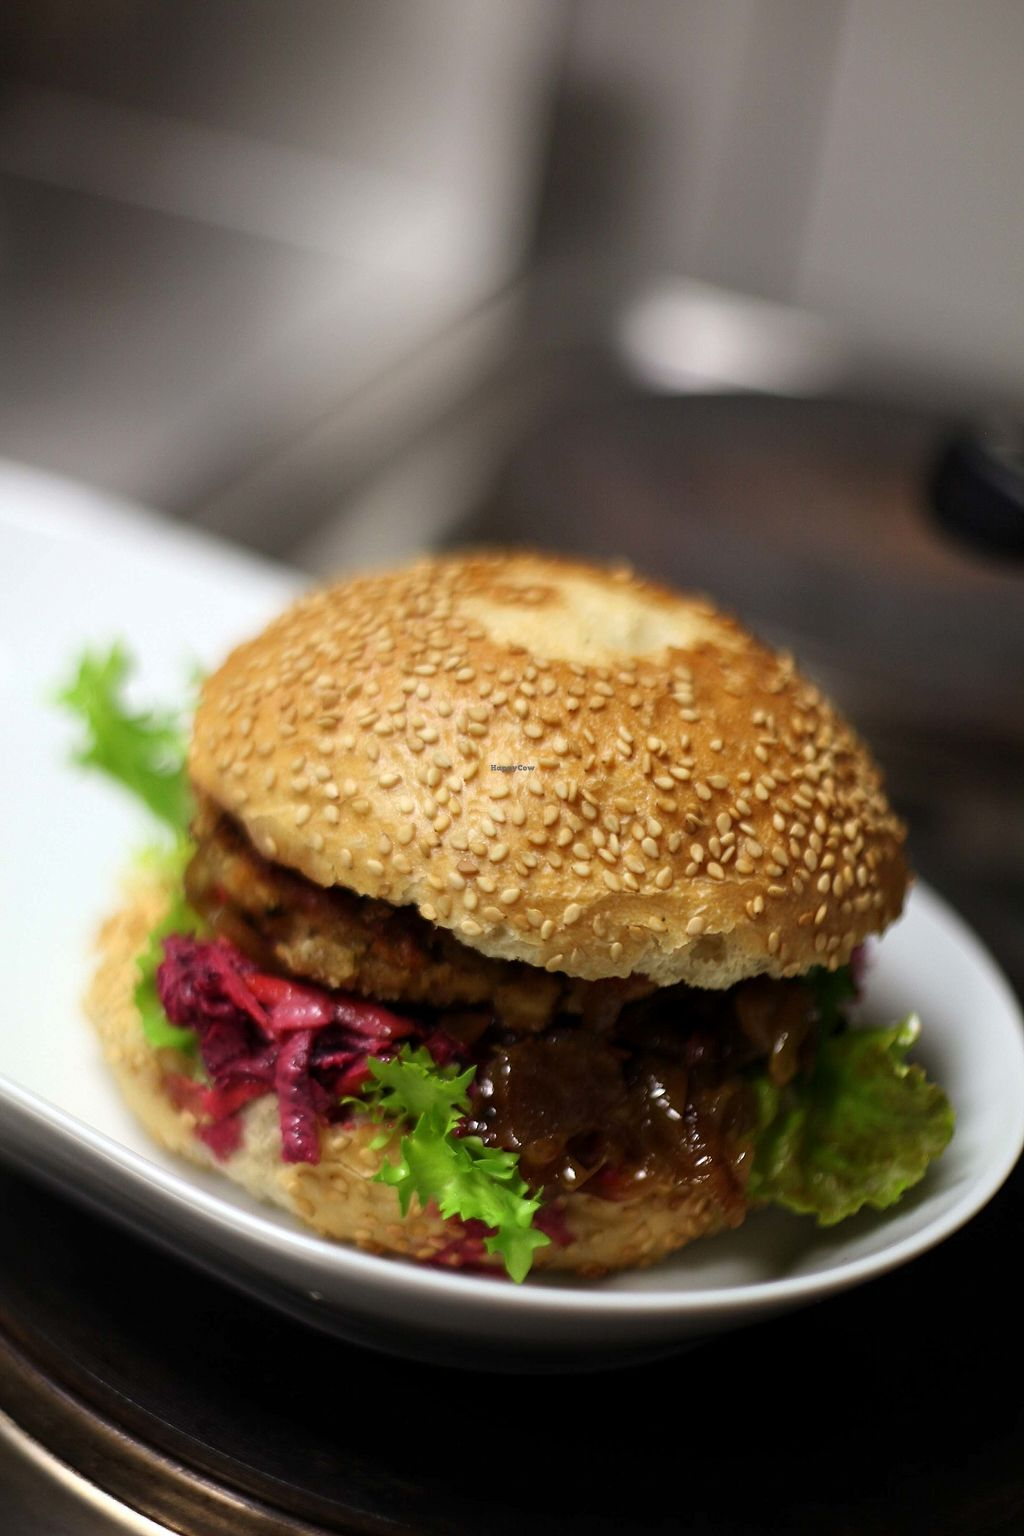 """Photo of Wildwuchs  by <a href=""""/members/profile/Wildwuchs_Vegan"""">Wildwuchs_Vegan</a> <br/>Wildwuchs Burger <br/> December 30, 2017  - <a href='/contact/abuse/image/105667/341079'>Report</a>"""